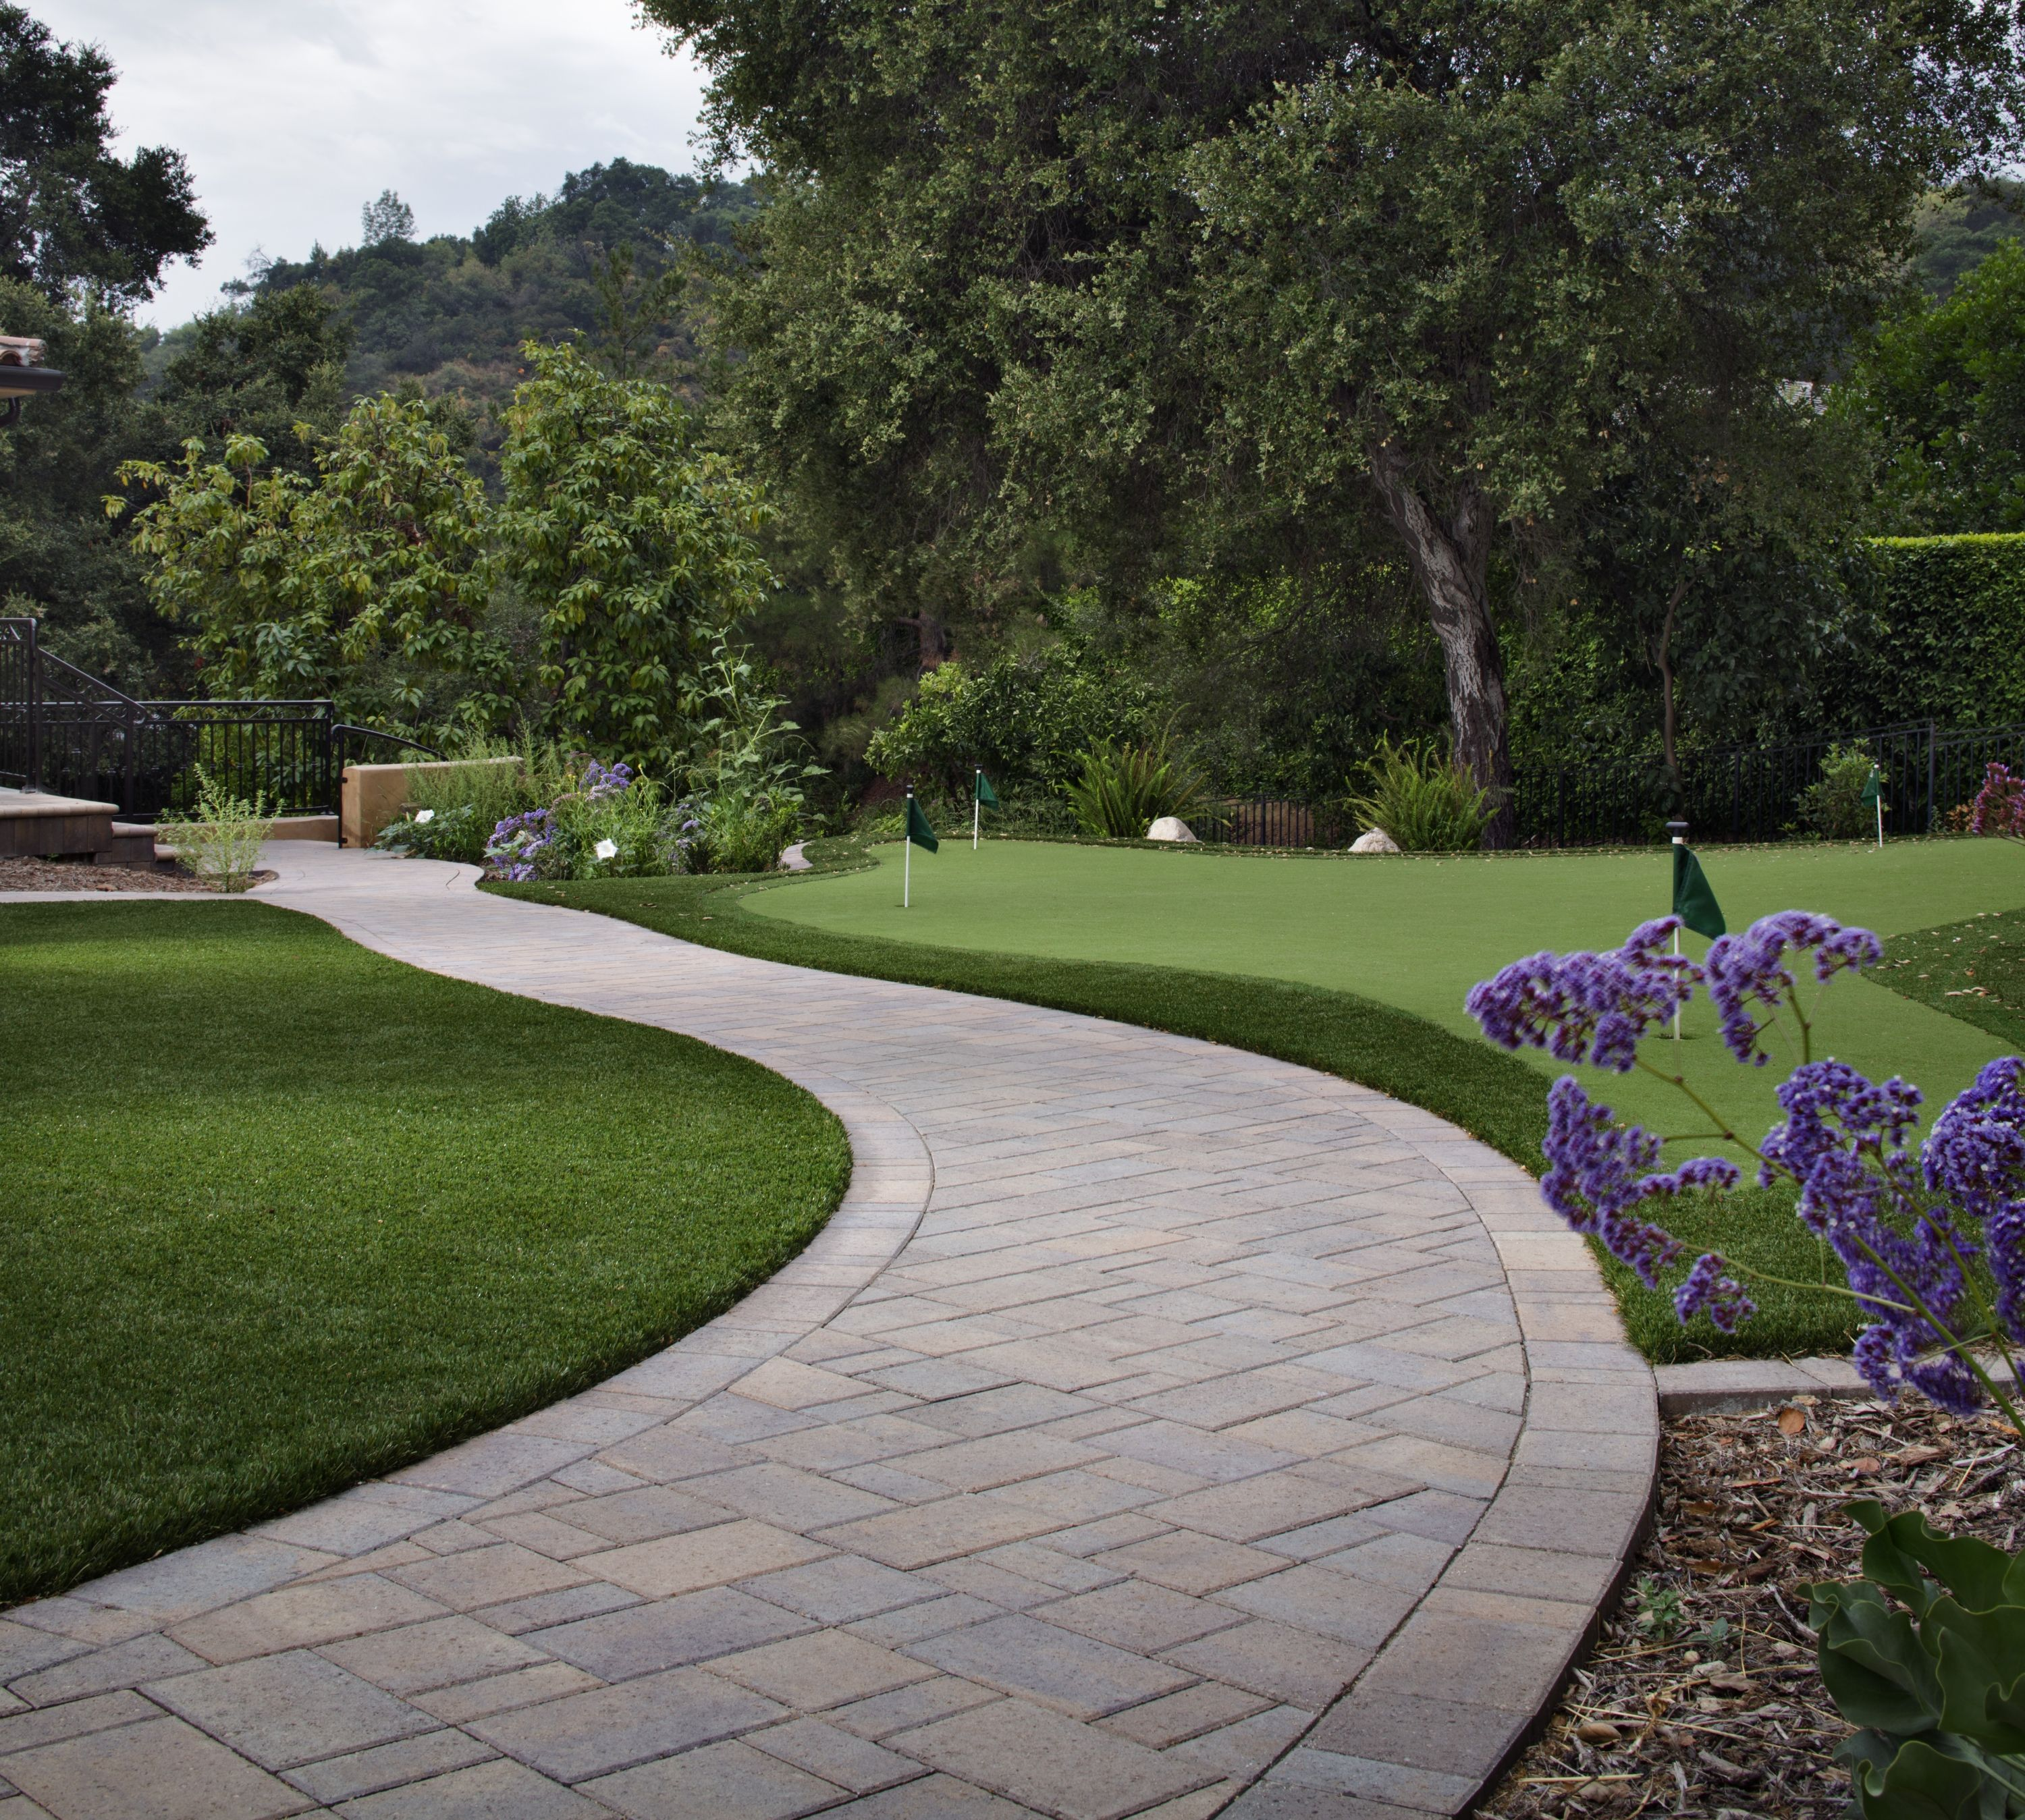 7 landscape edging ideas for artificial grass lawns install it direct - Garden pathway design ideas with some natural stones trails ...